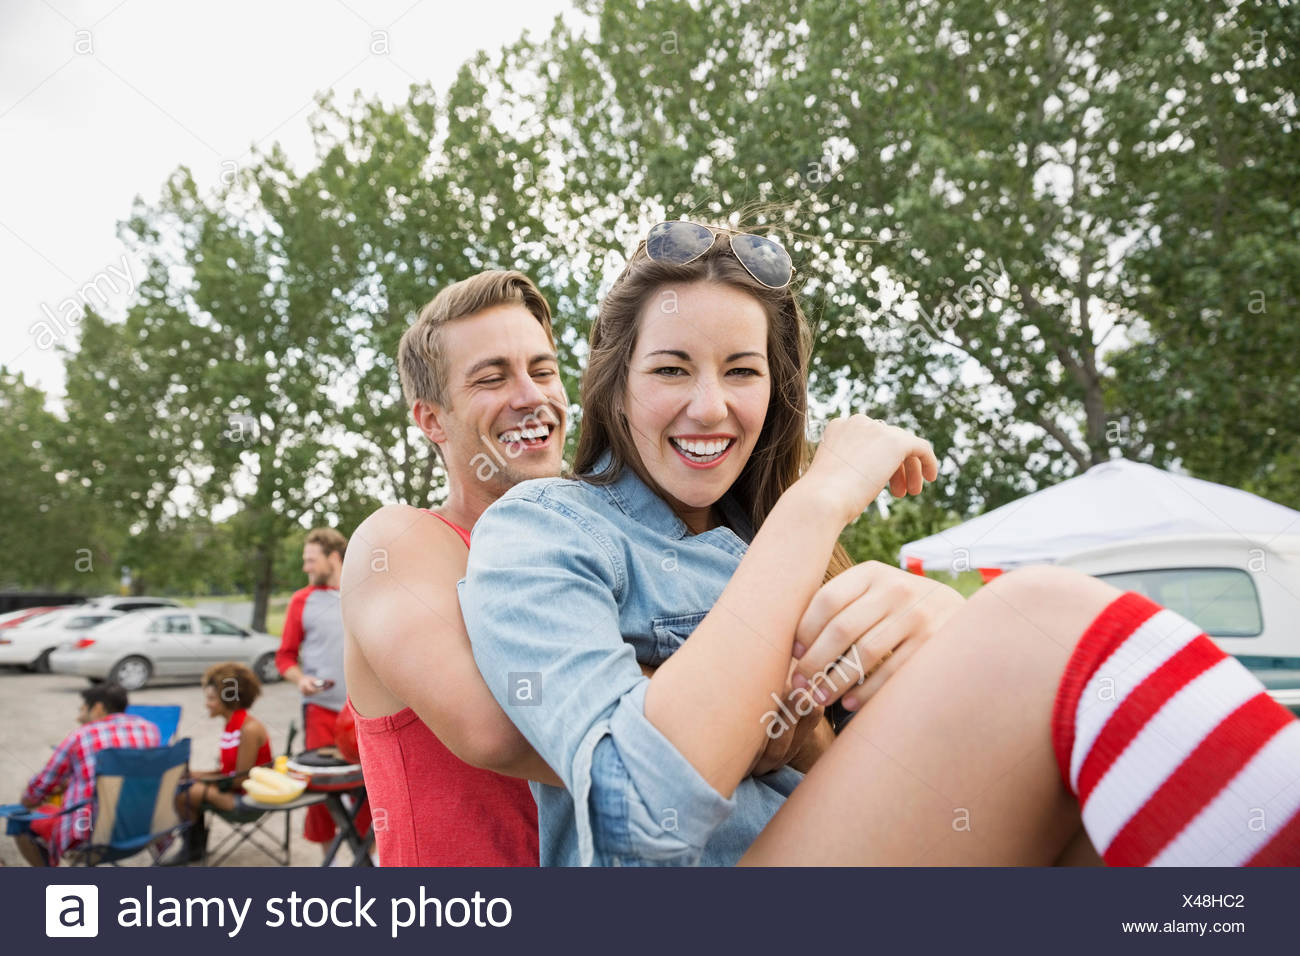 Man carrying girlfriend at tailgate barbecue in field - Stock Image